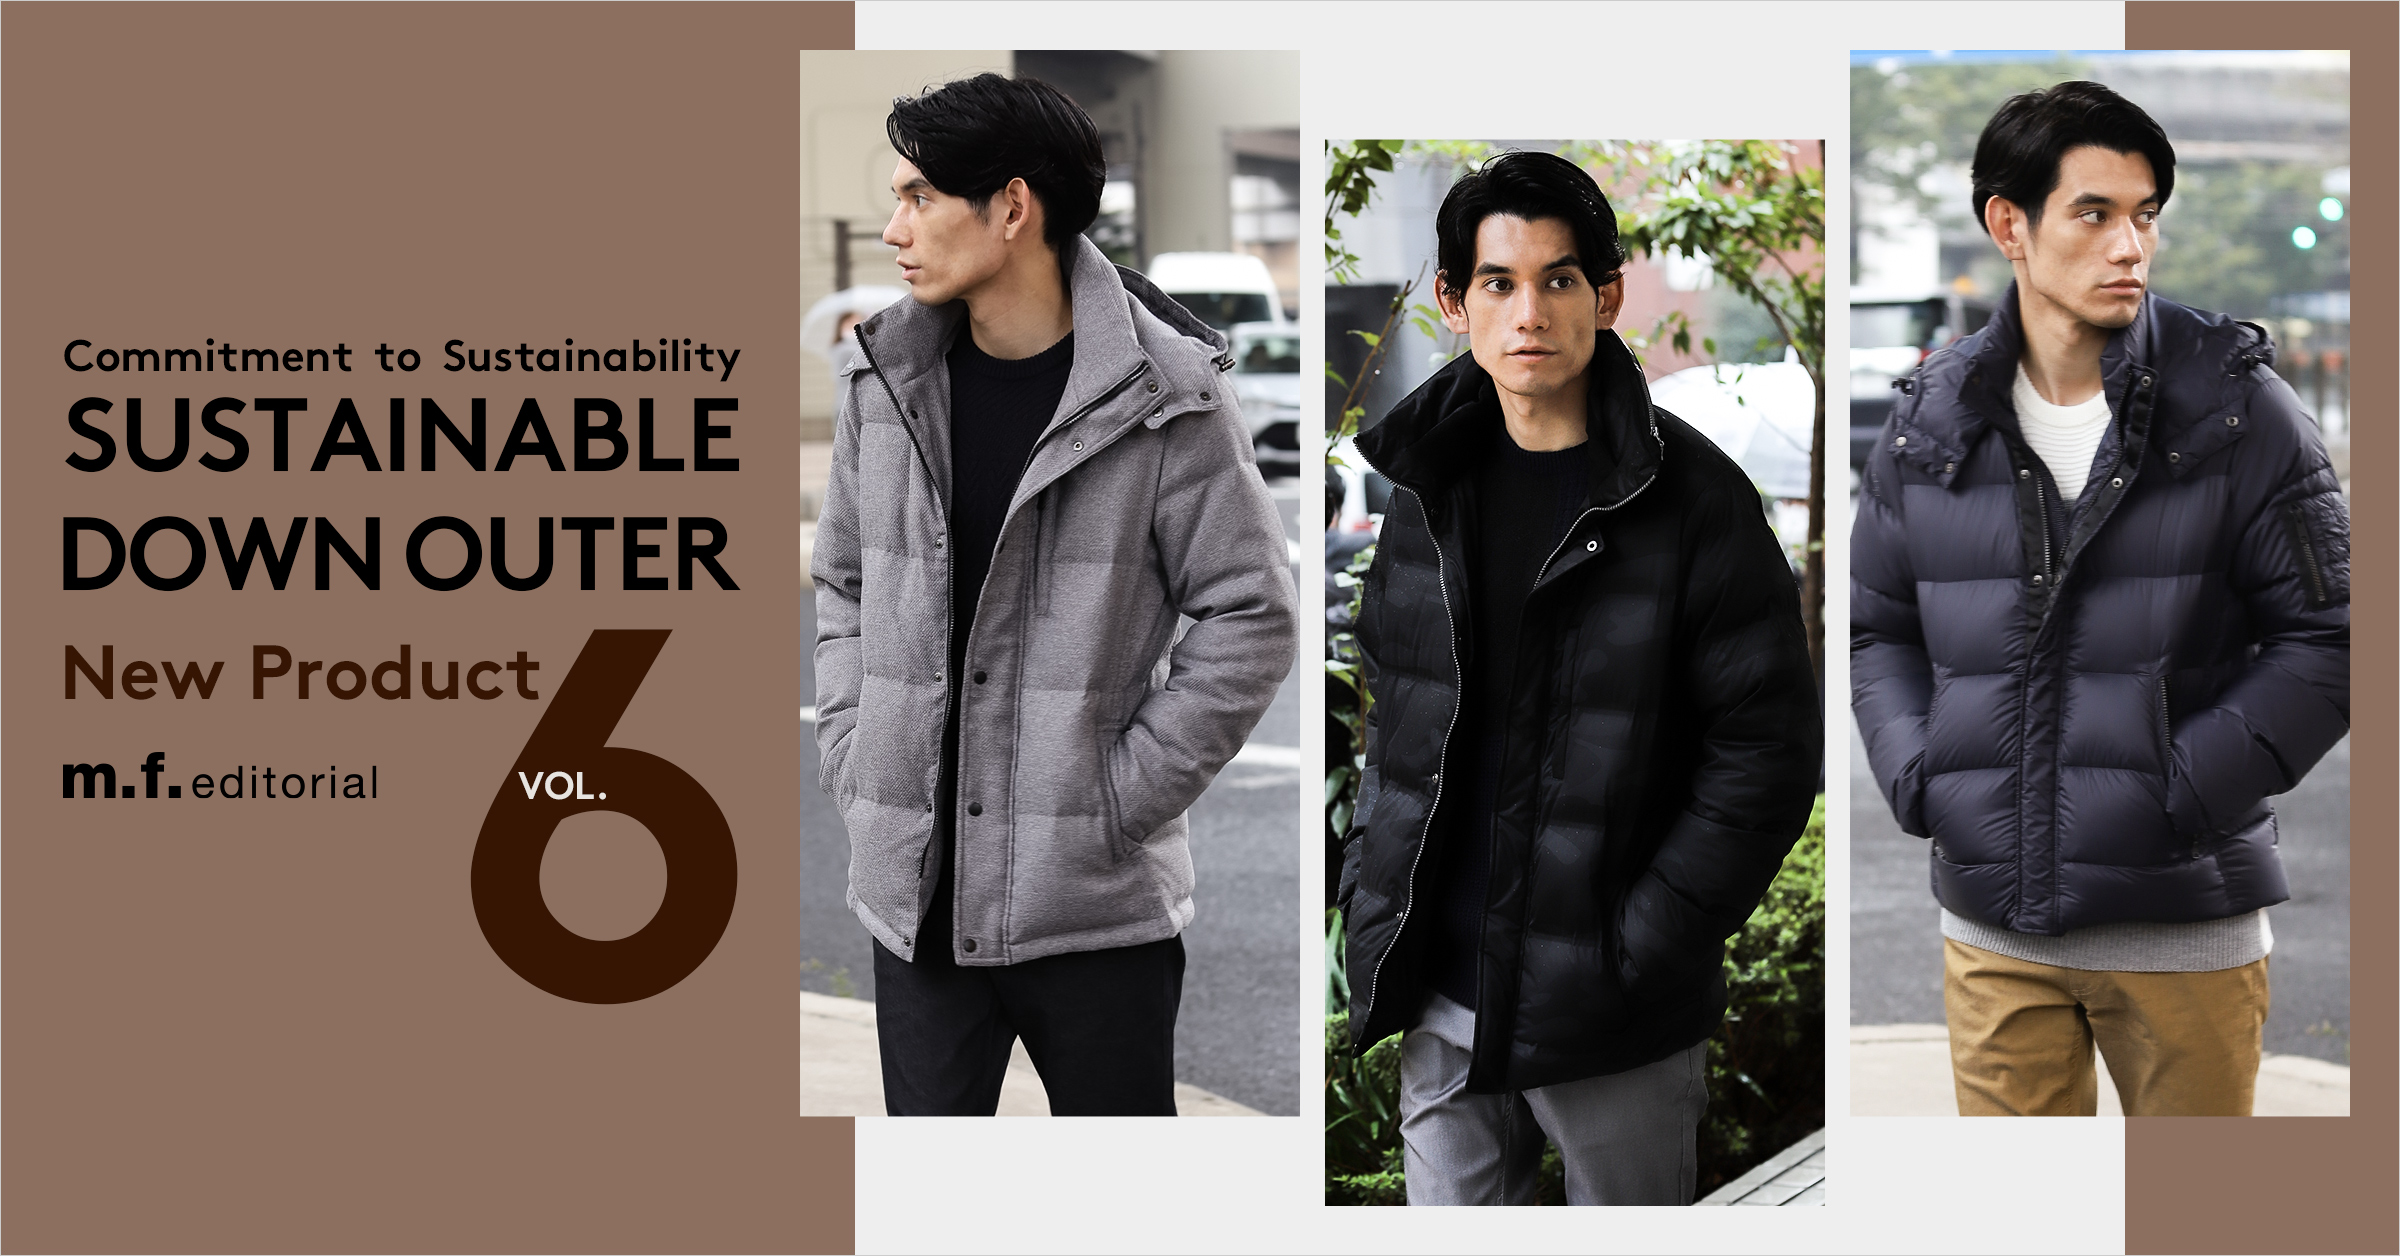 m.f.editorial(エム・エフ・エディトリアル) Sustainable Down Outer